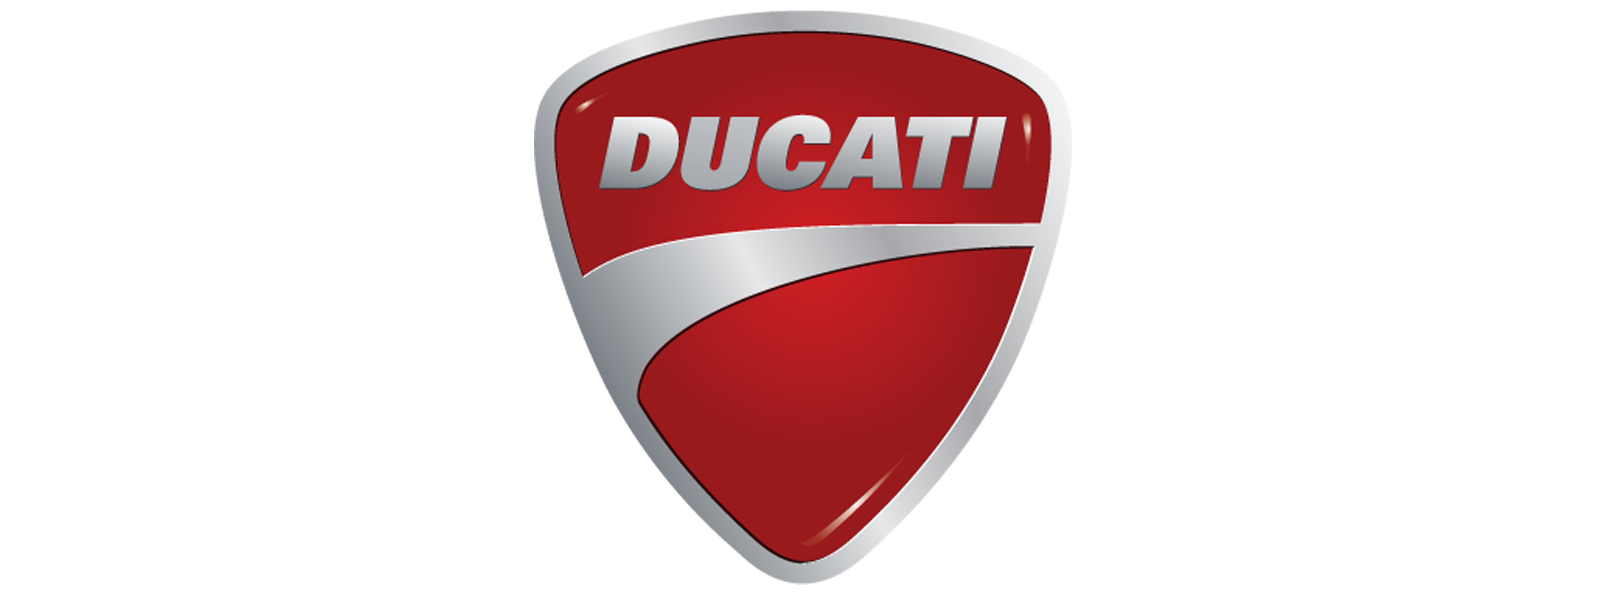 Ducati Motorcycle Logo Meaning And History Symbol Ducati